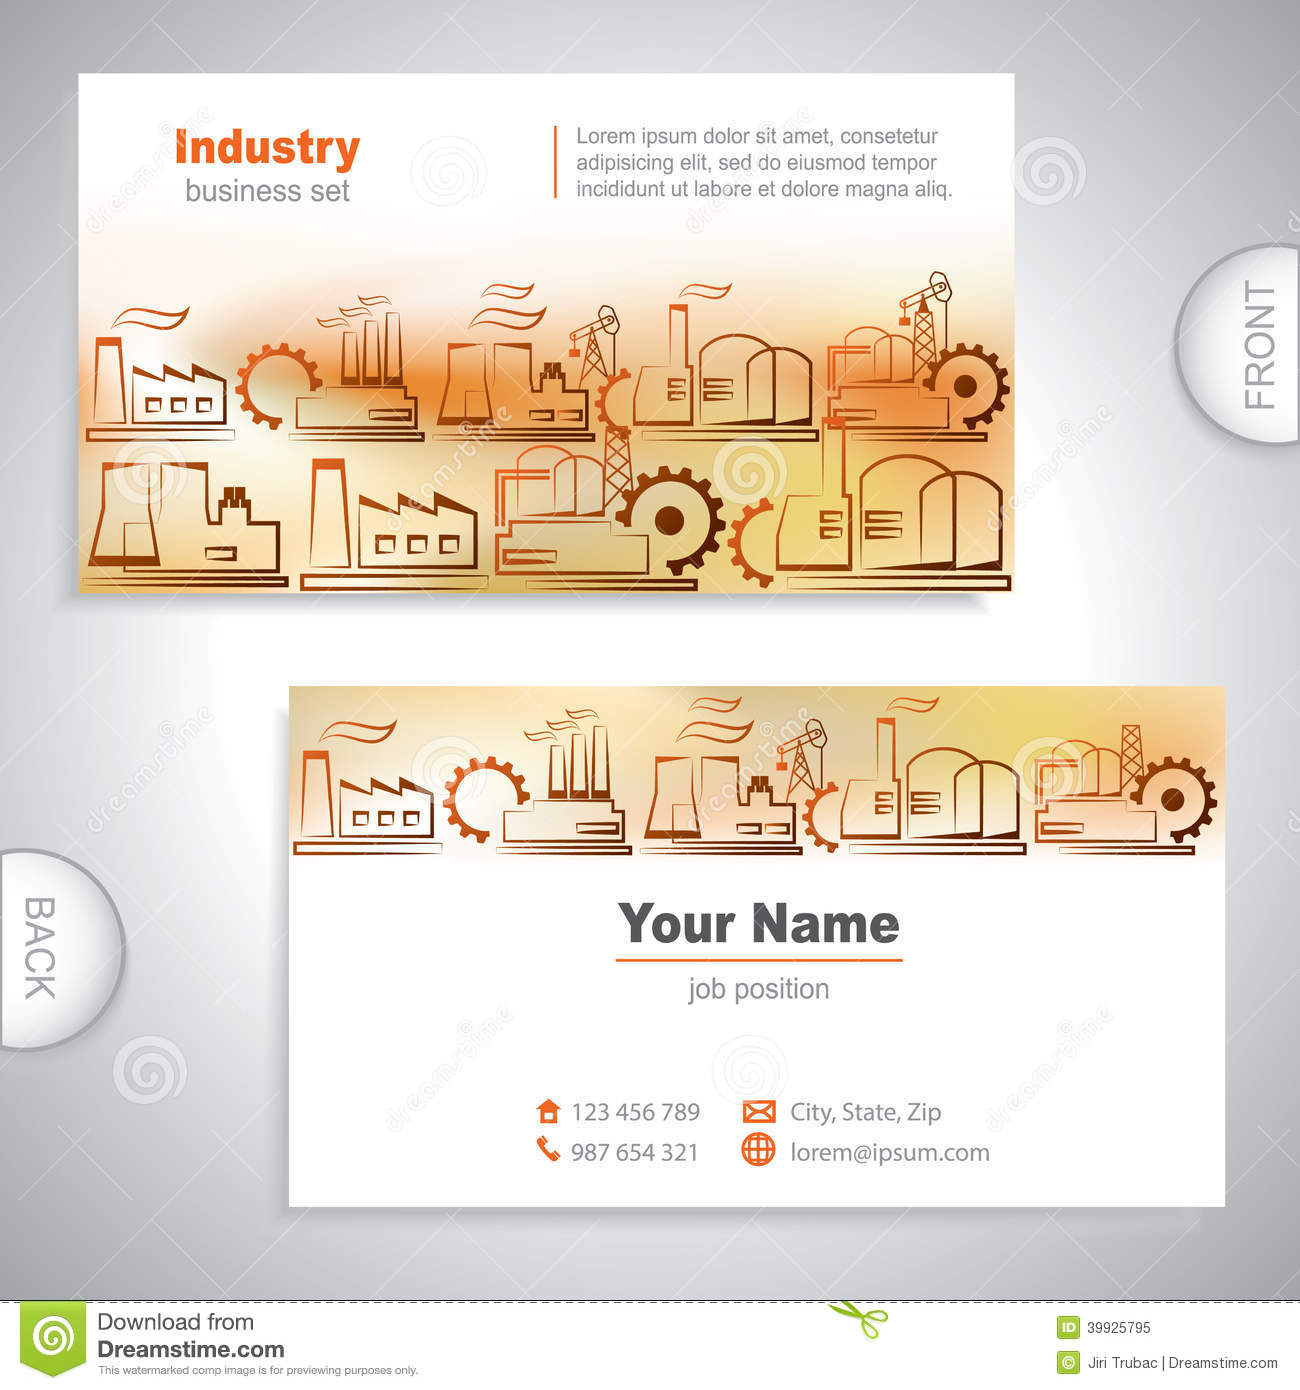 Universal Industrial Business Card Stock Vector - Illustration of ...